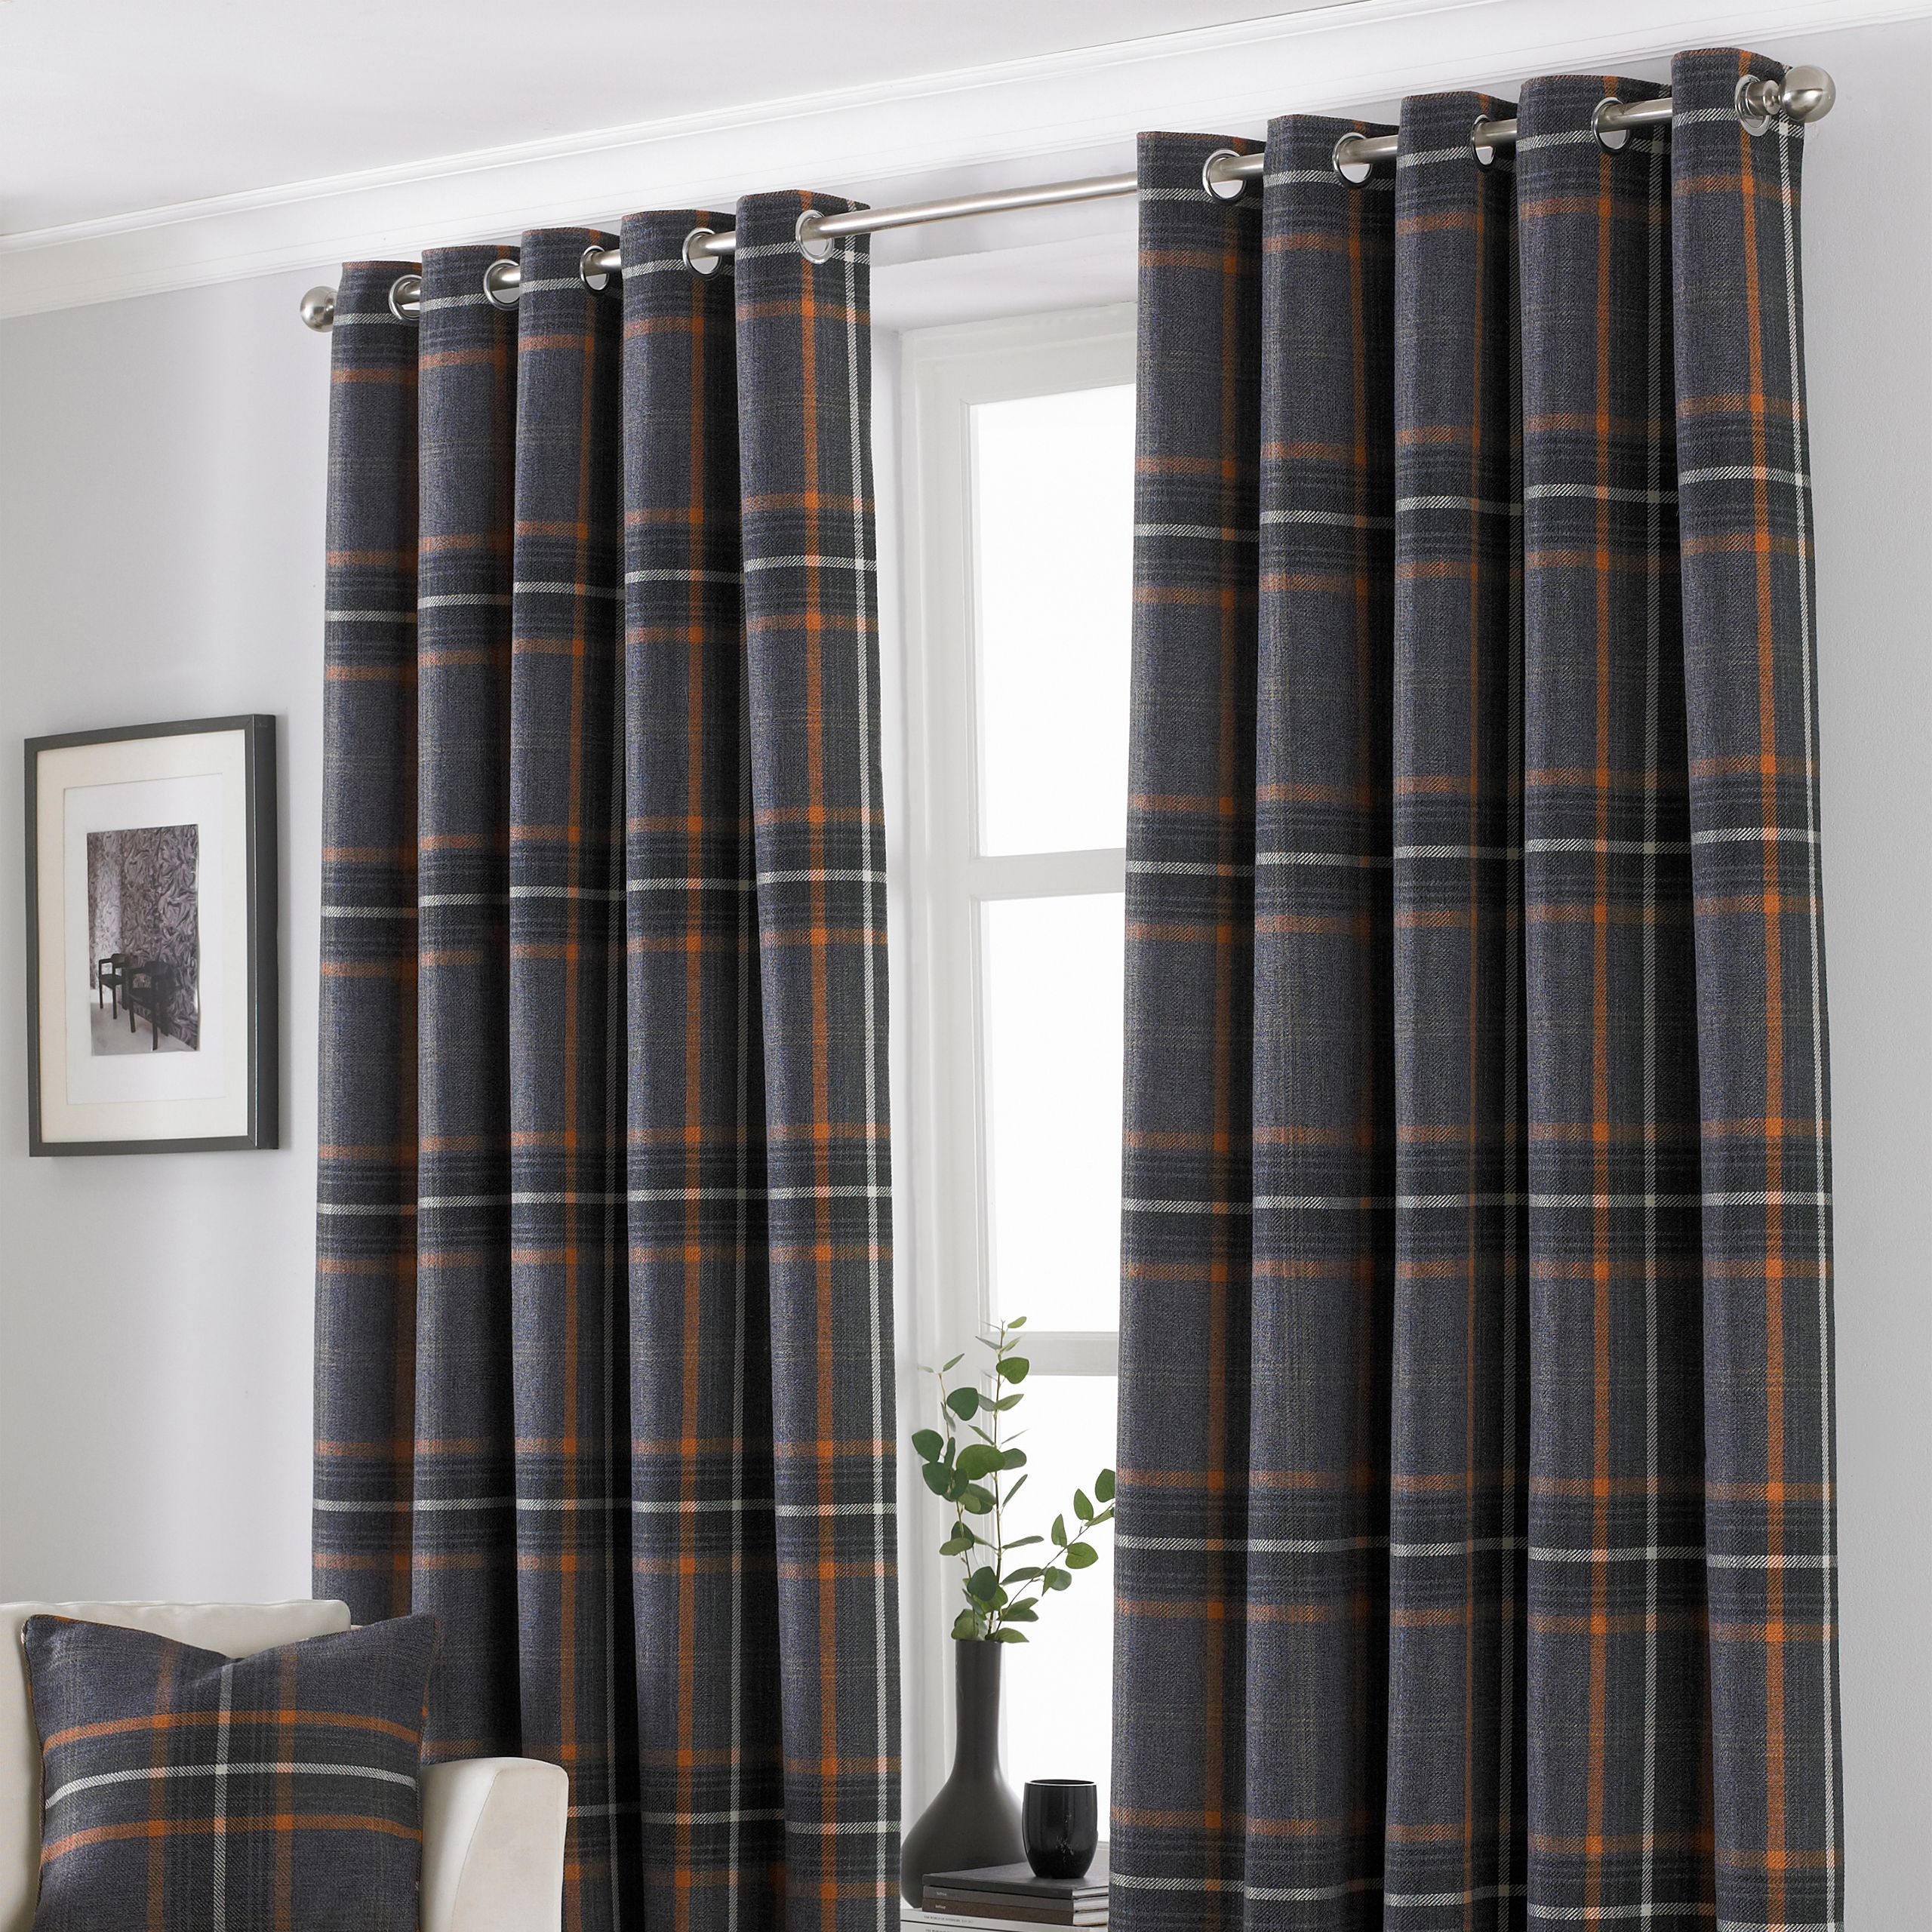 Aviemore Eyelet Curtains